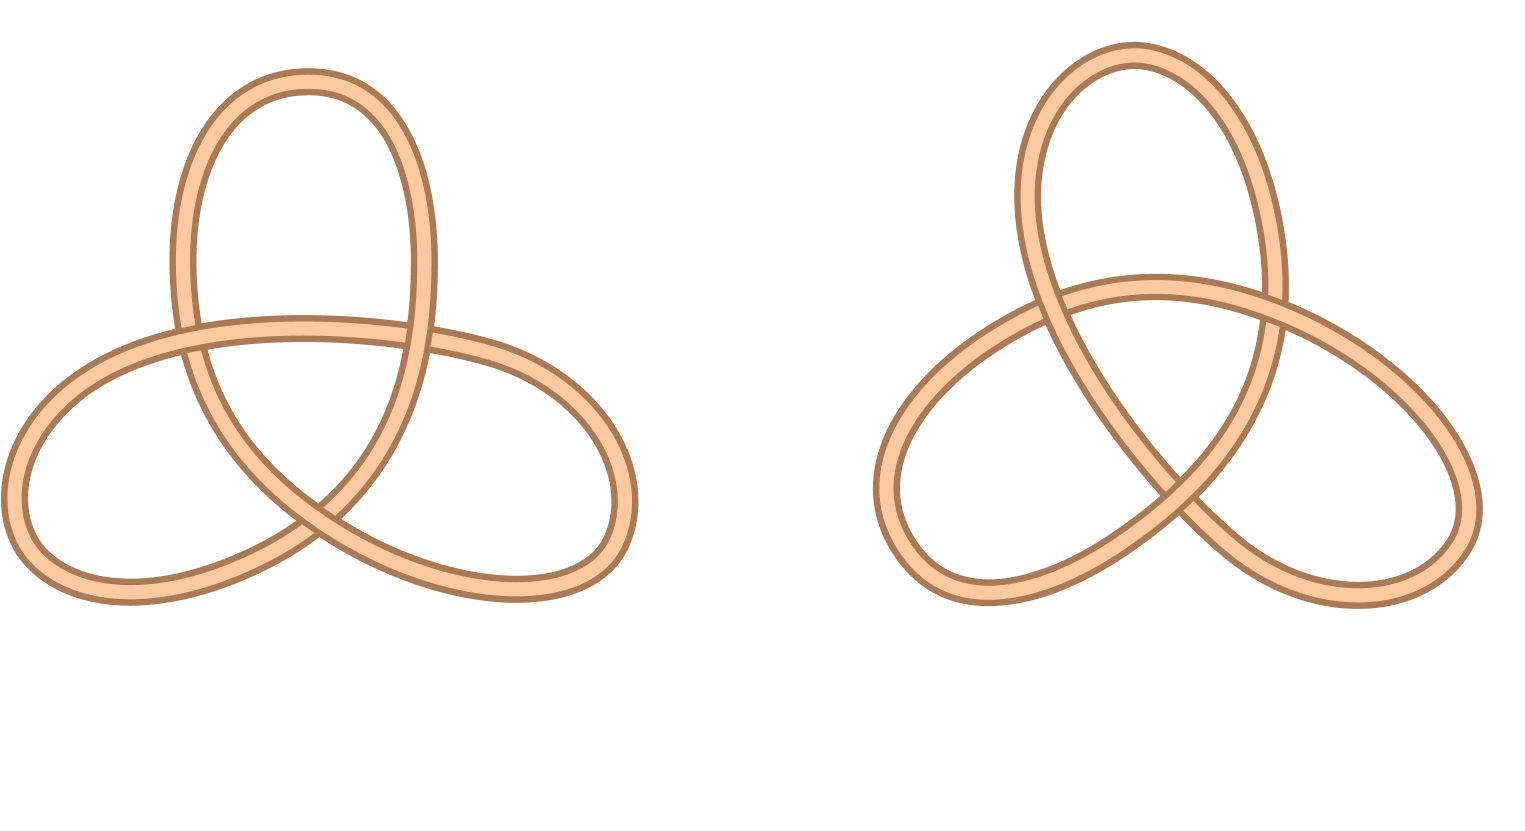 Drawing ties simple. Knots brilliant math science